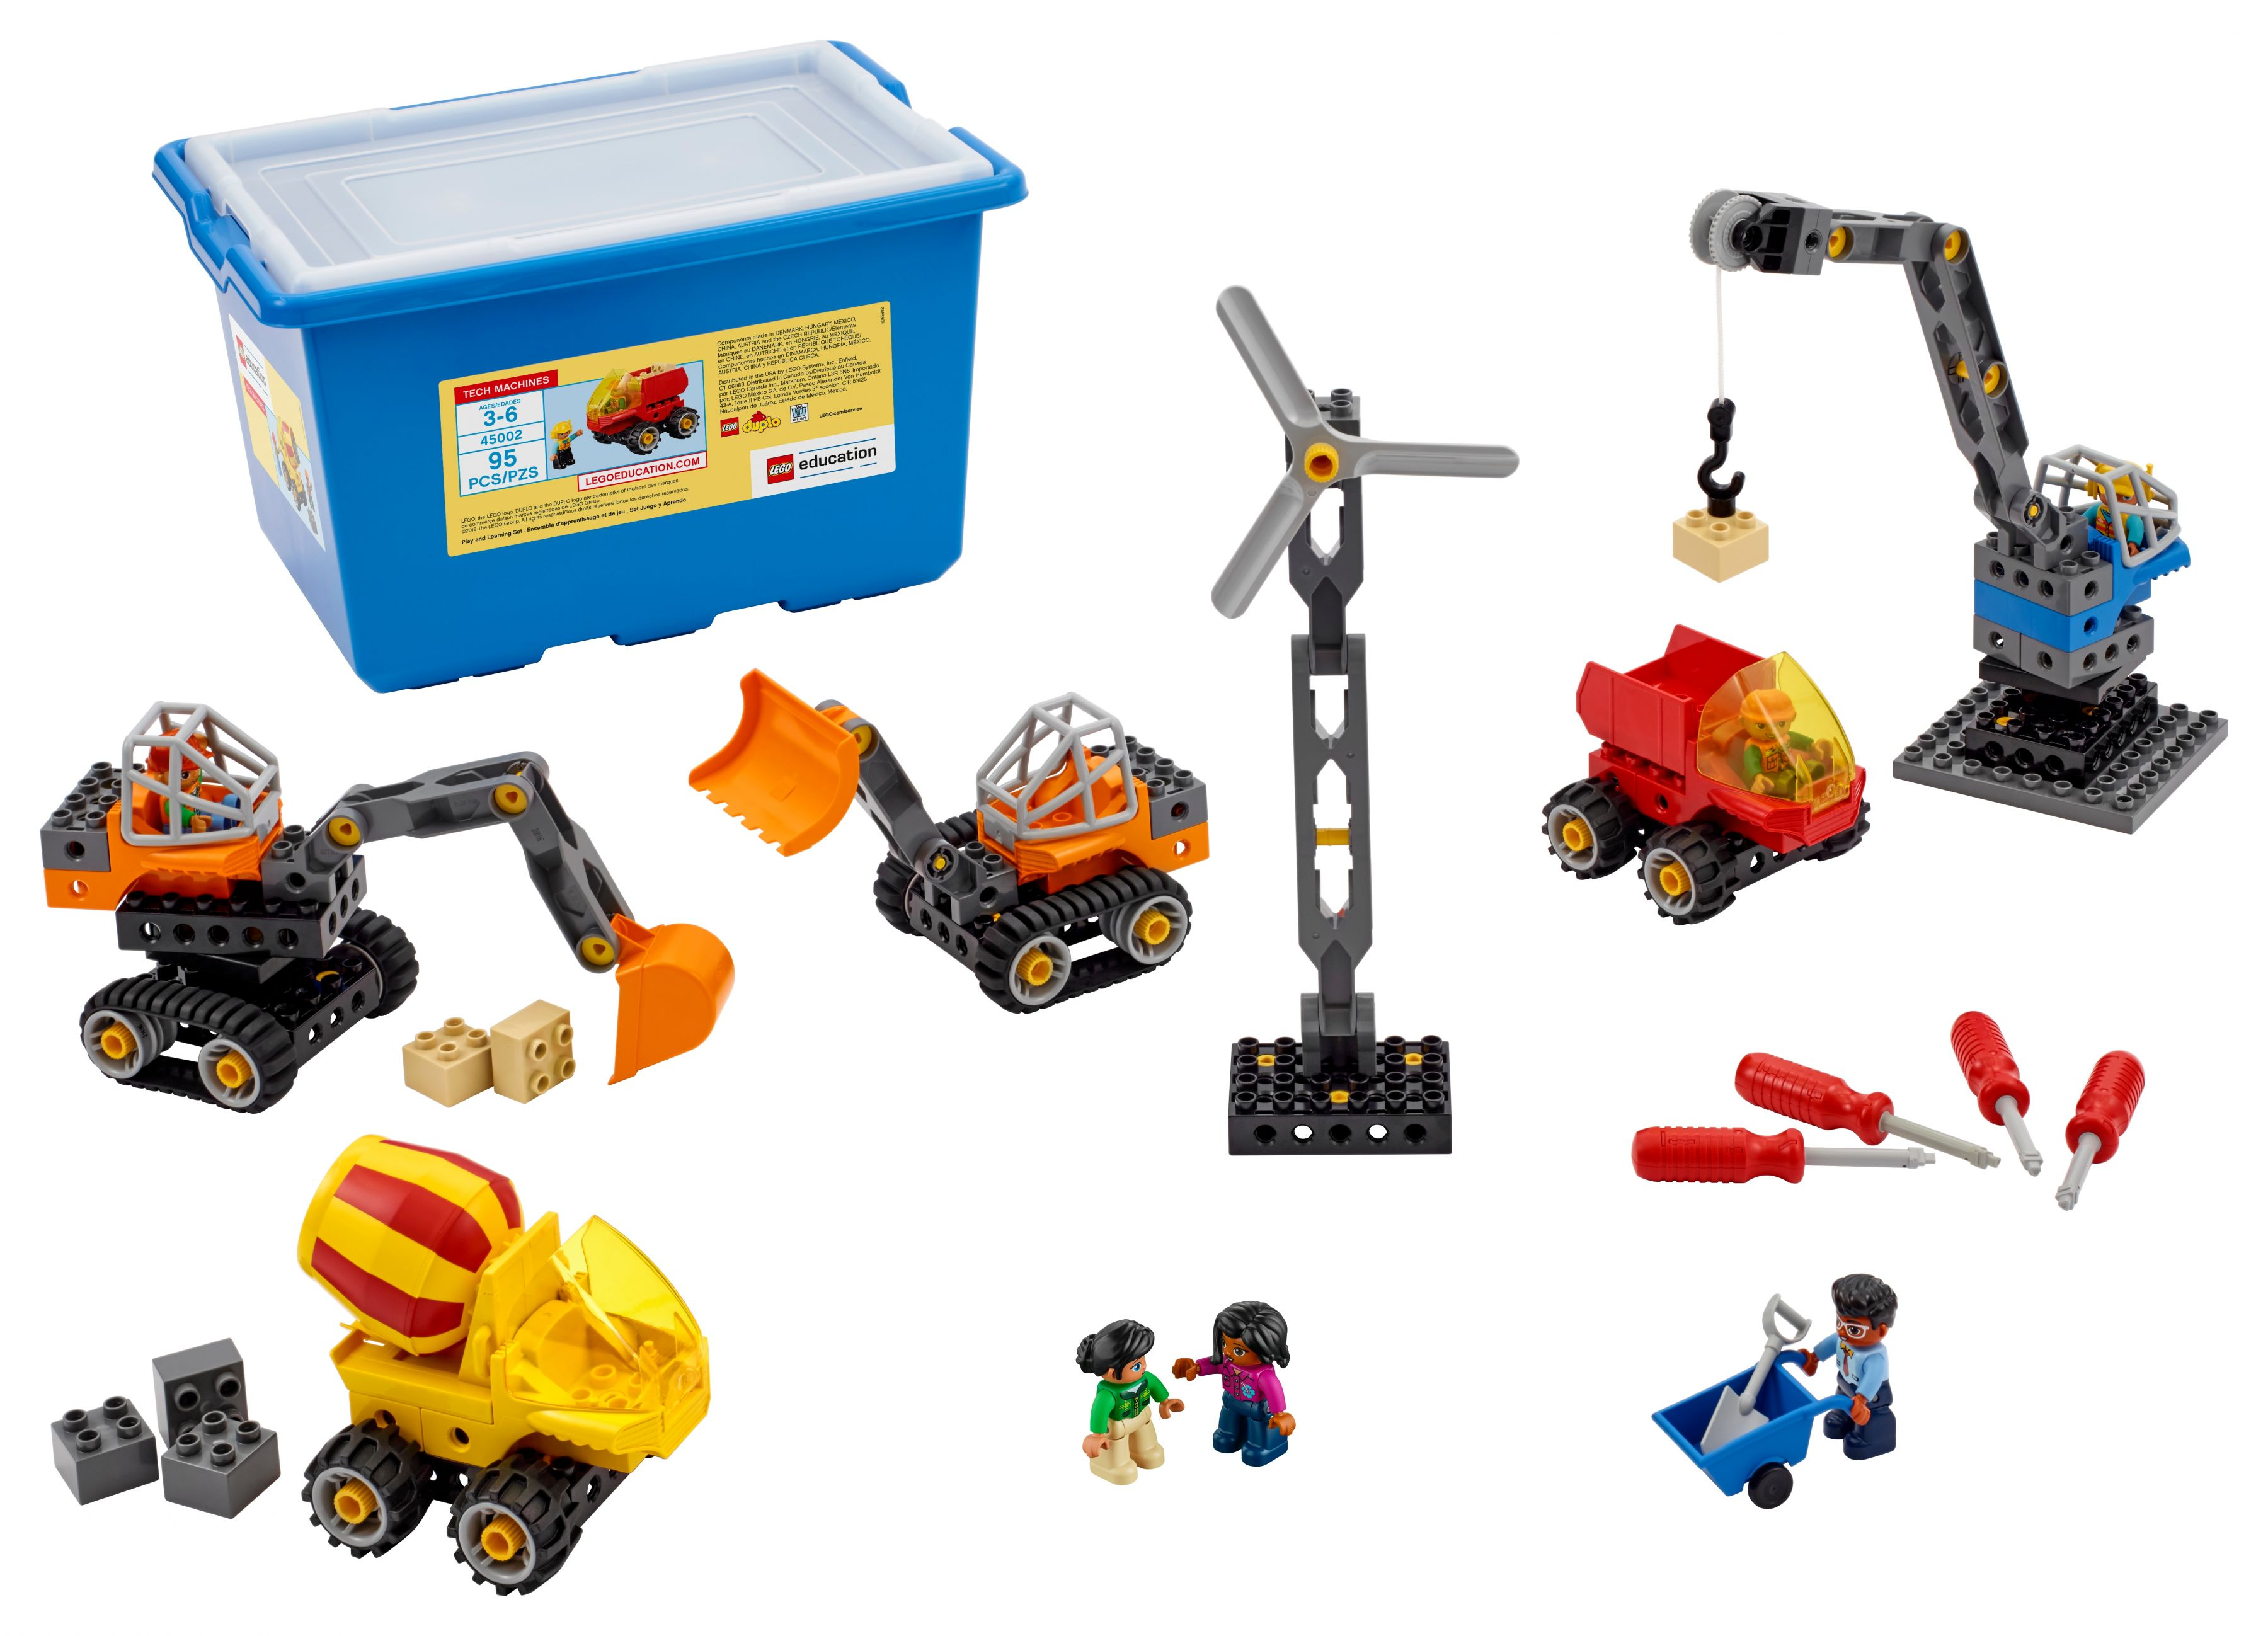 LEGO Education 45002 Maschinentechnik